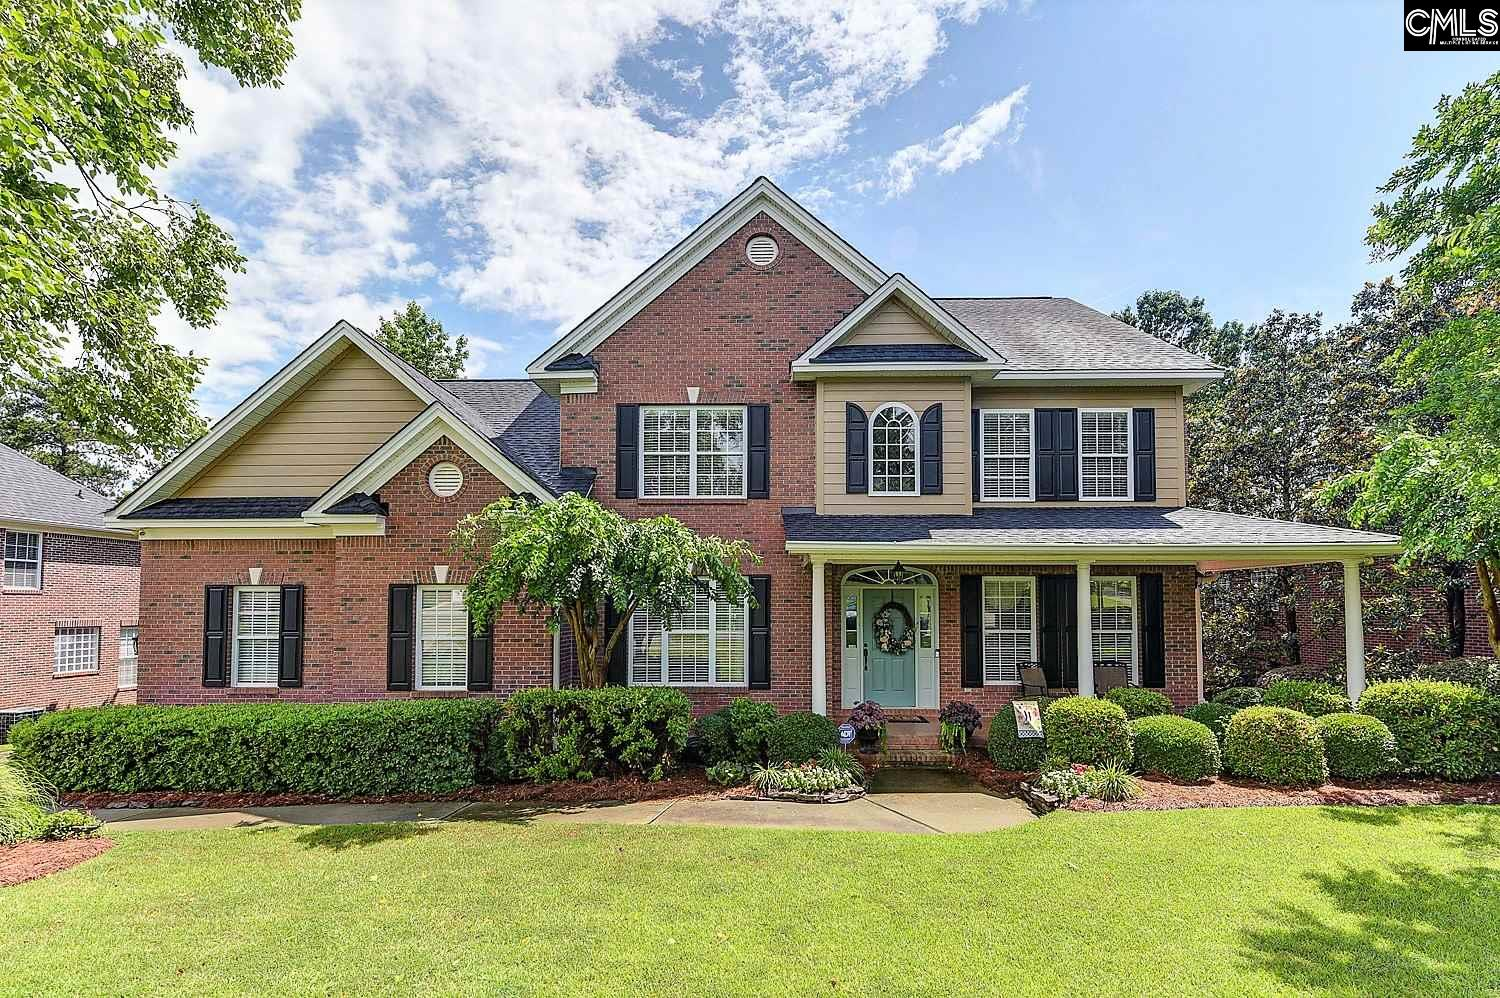 309 Old Wood Columbia, SC 29212